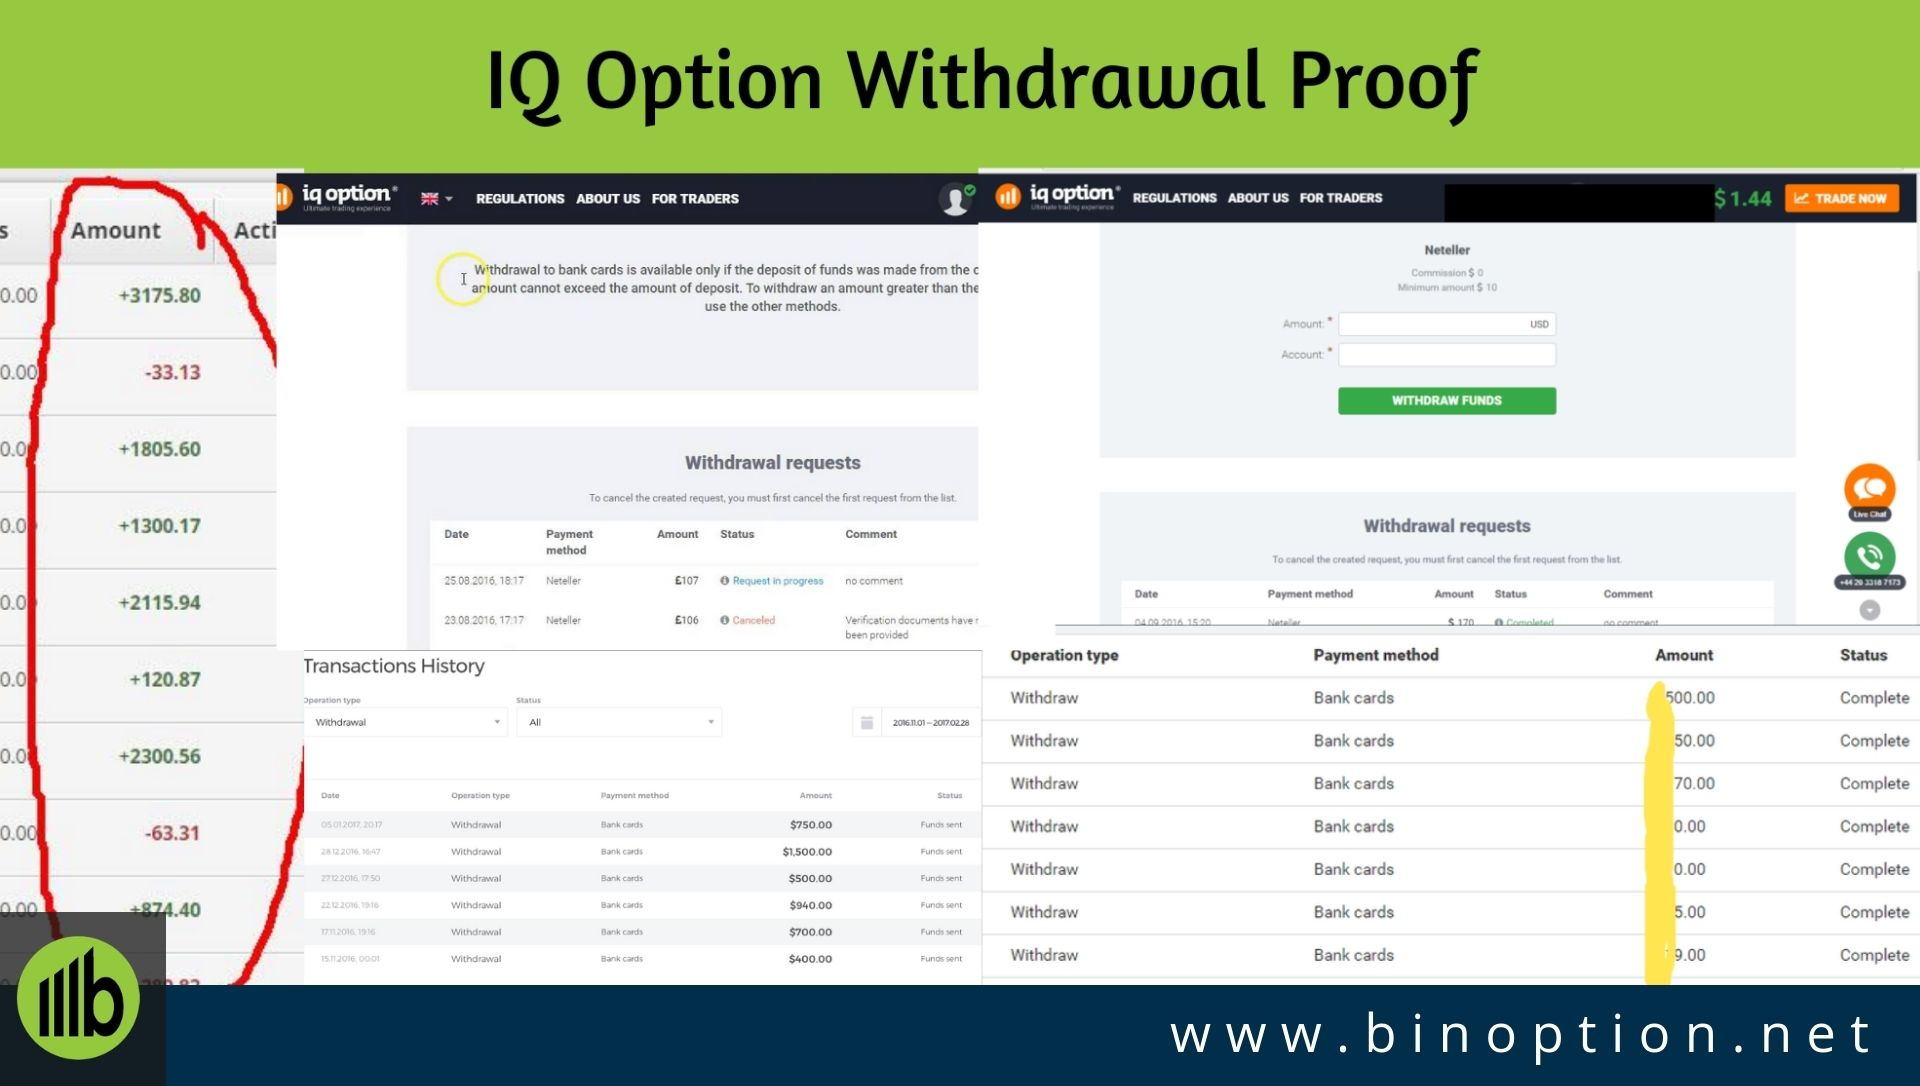 Iq Option Withdrawal And Deposit How To Proof Problems